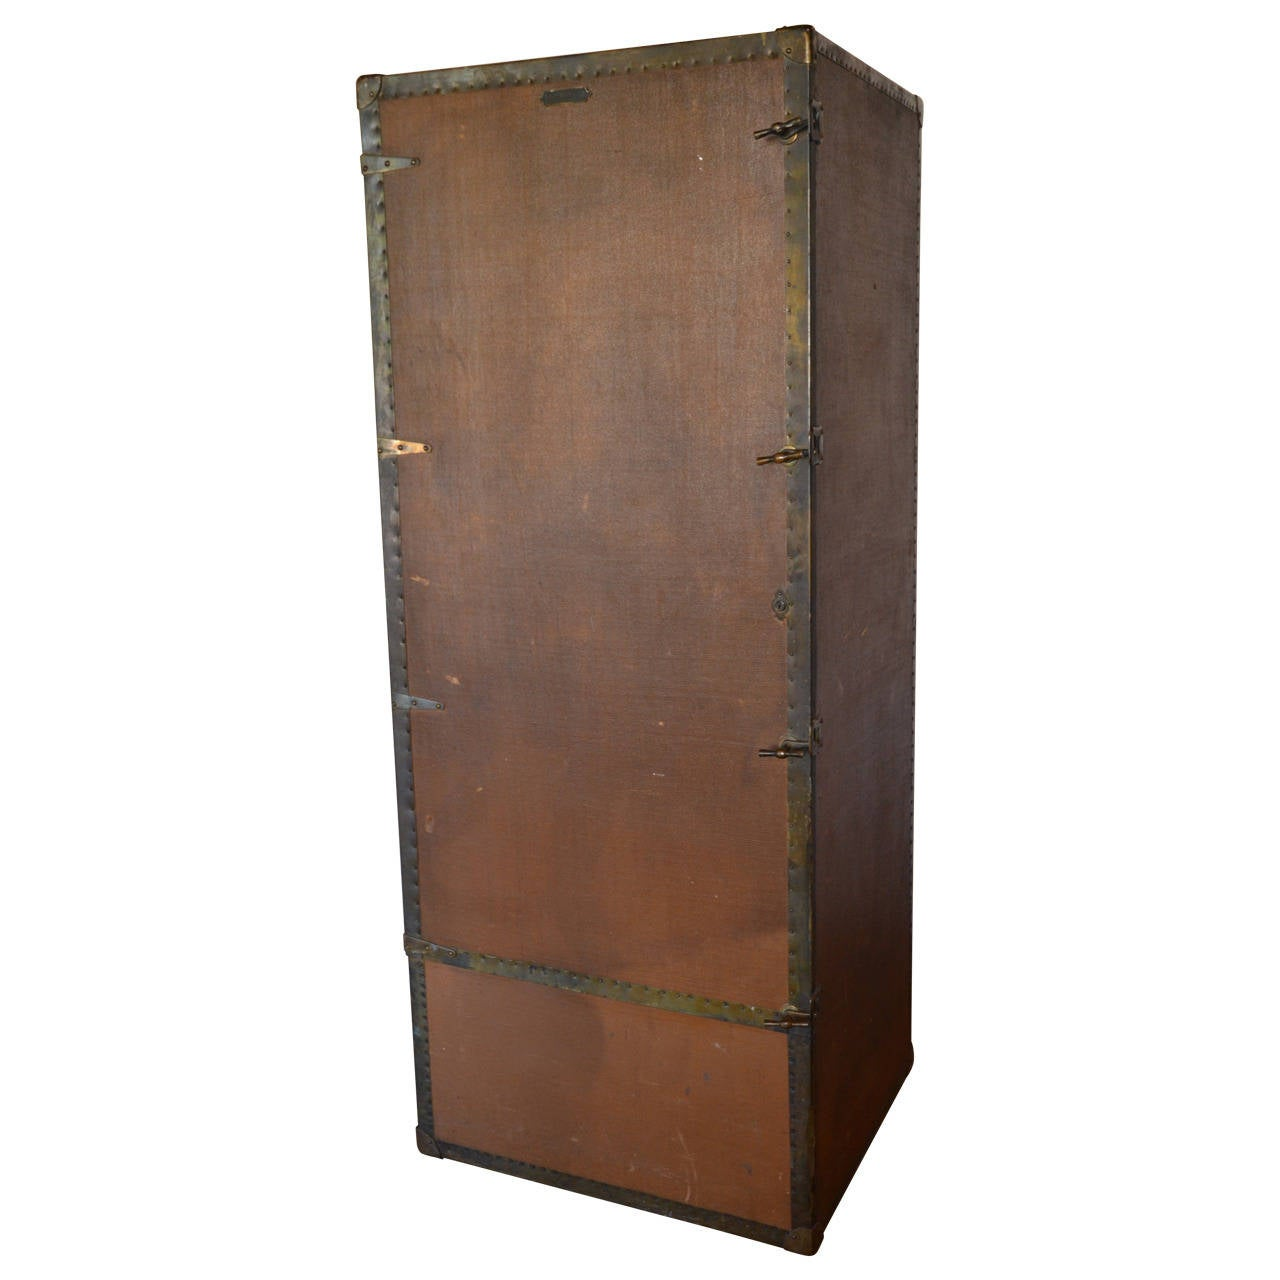 Steamer Trunk Furniture Wardrobe Steamer Trunk Circa 1915 For Sale At 1stdibs